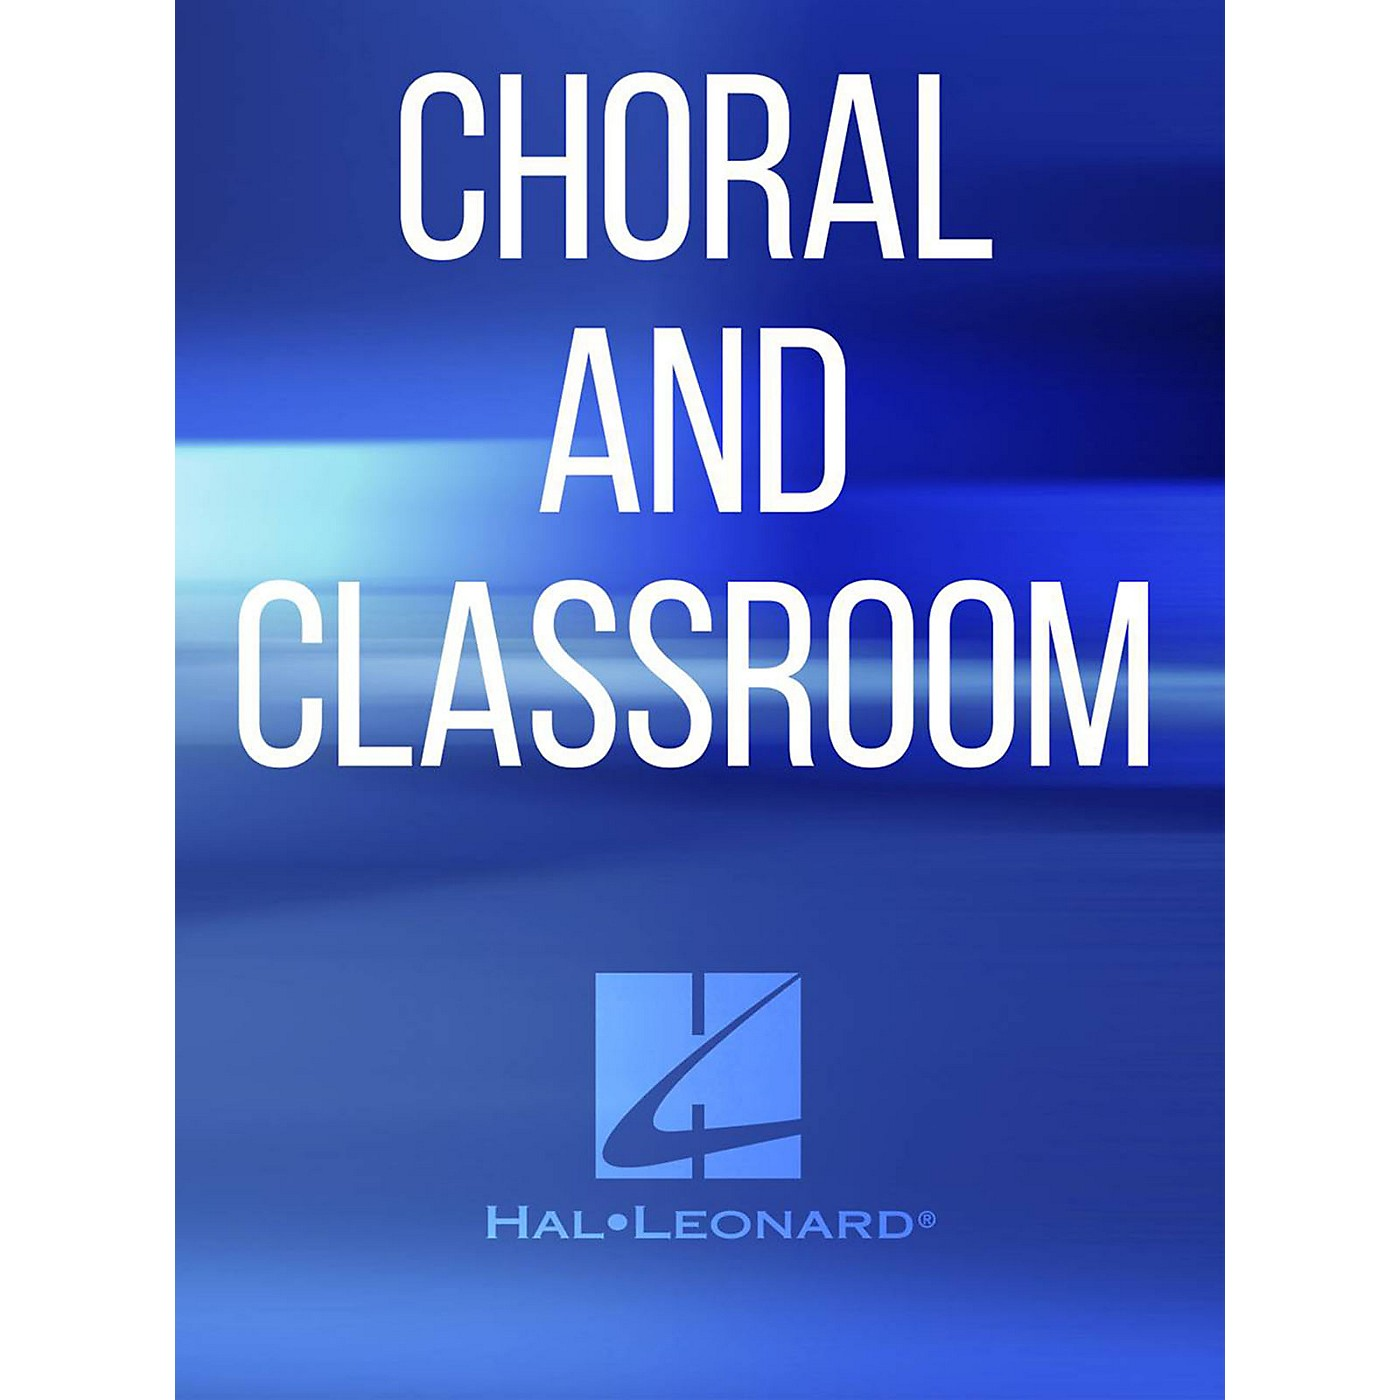 Hal Leonard Christmas Is ([with The Christmas Song (Chestnuts Roasting on an Open Fire)]) SAB Arranged by Mac Huff thumbnail